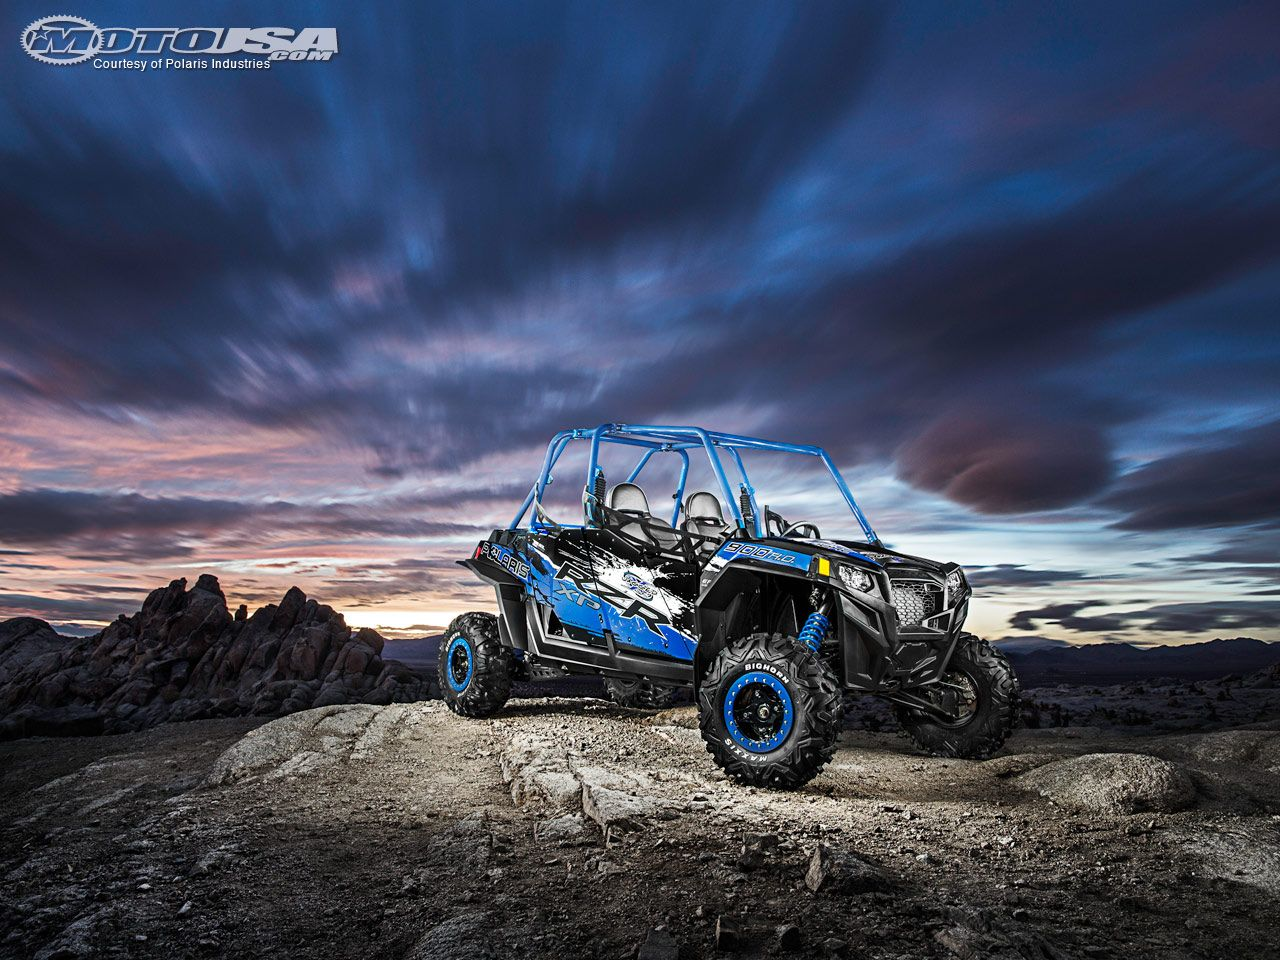 Polaris unveils the 2013 RZR XP 900 HO Jagged X Edition